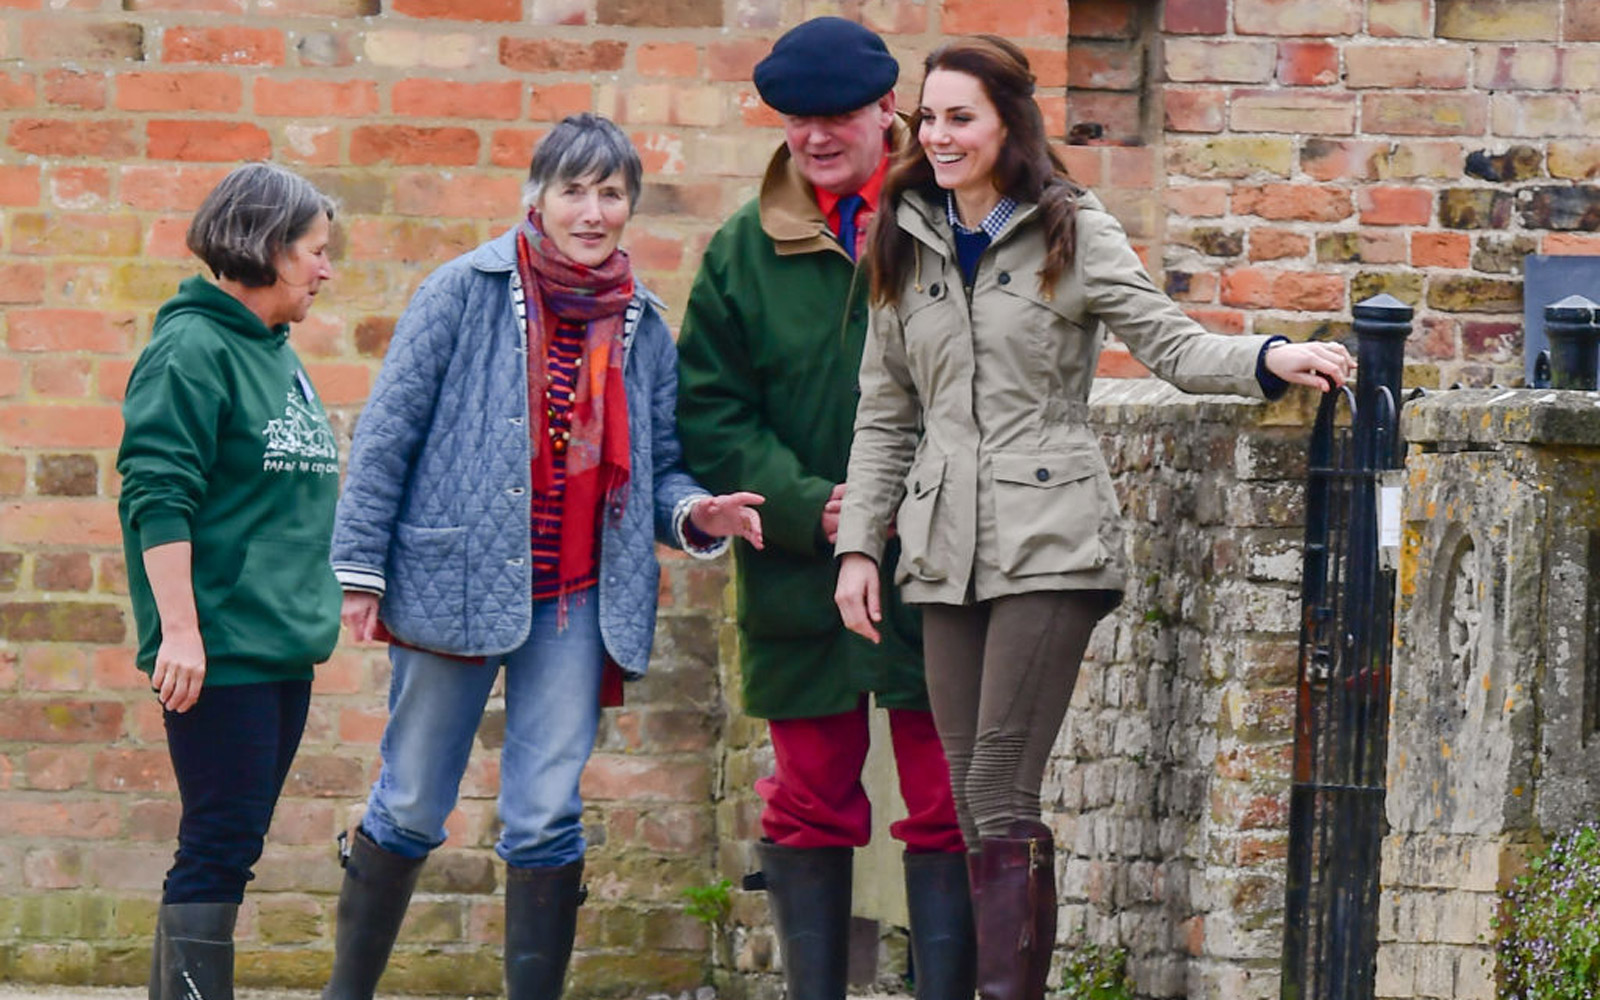 ARLINGHAM, UNITED KINGDOM - MAY 03: Catherine, Duchess of Cambridge visits Farms for City Children, Wick Court, Overton Lance, on May 03, 2017 in Arlingham, England.PHOTOGRAPH BY Jules Annan / Barcroft ImagesLondon-T:+44 207 033 1031 E:hello@barcroftm